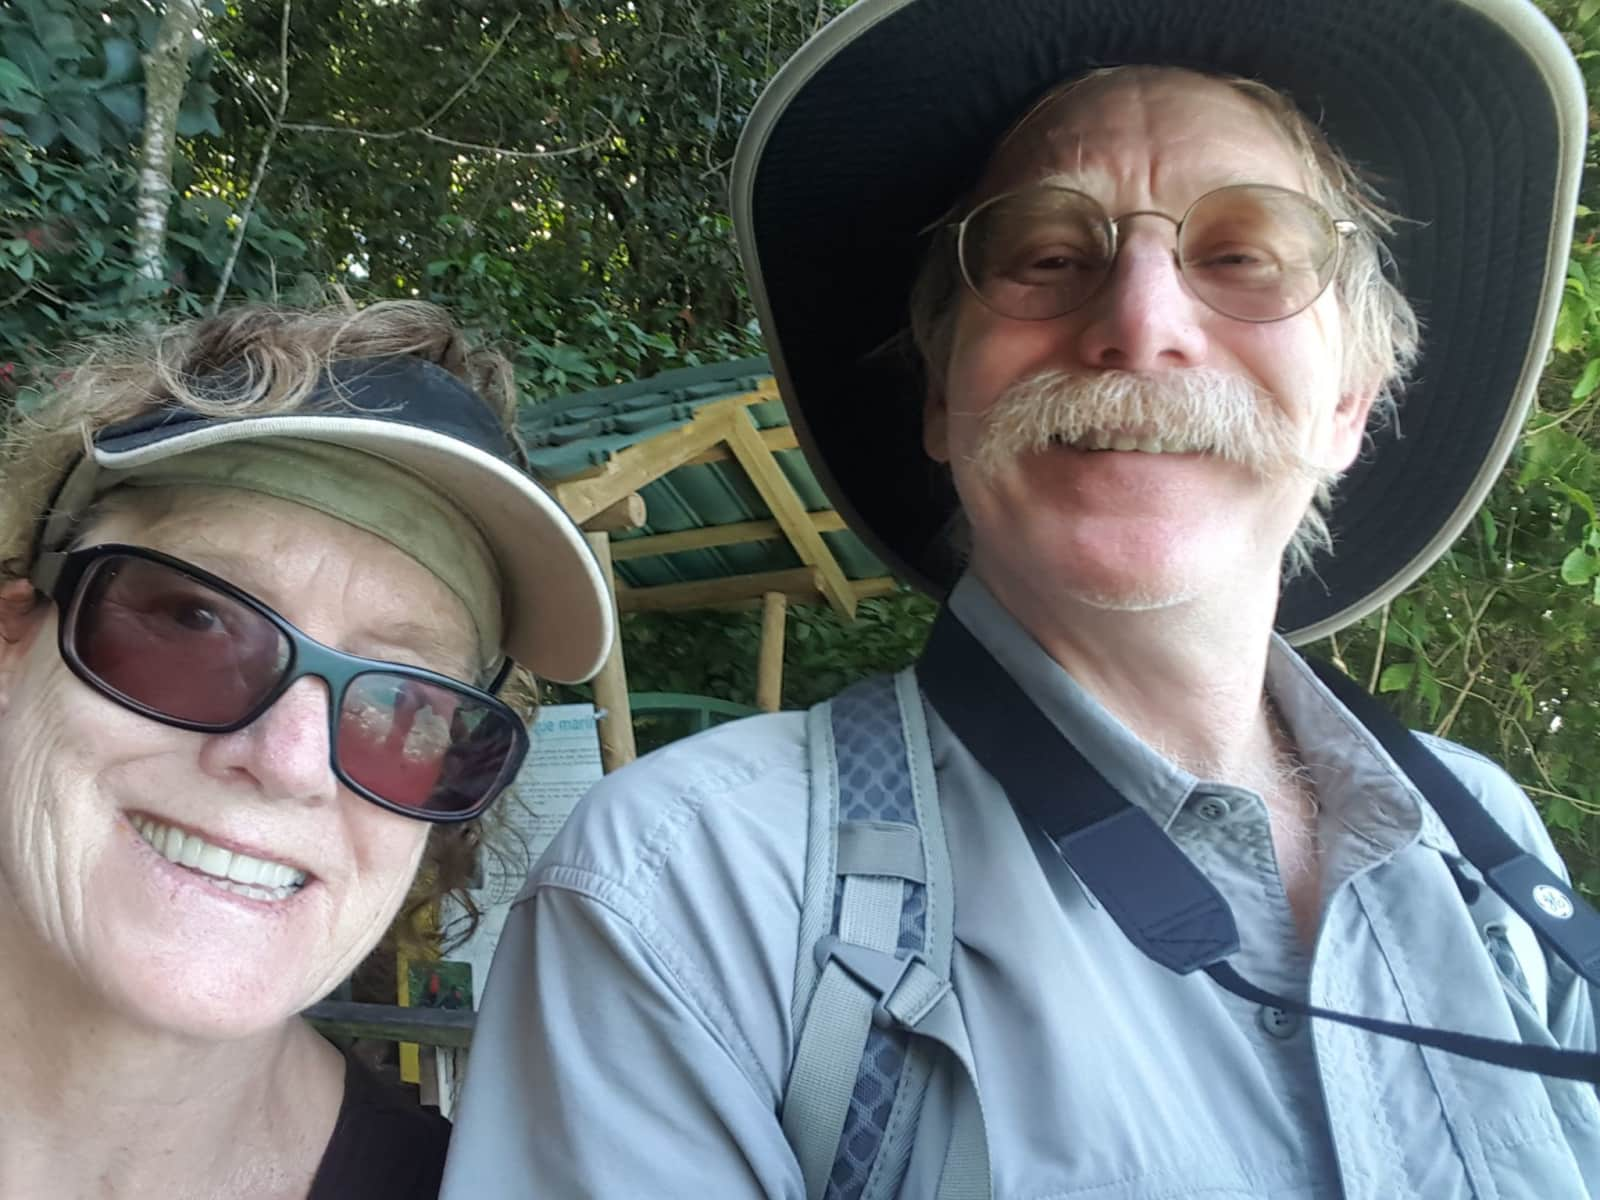 Terre & Steve from Oakland, California, United States